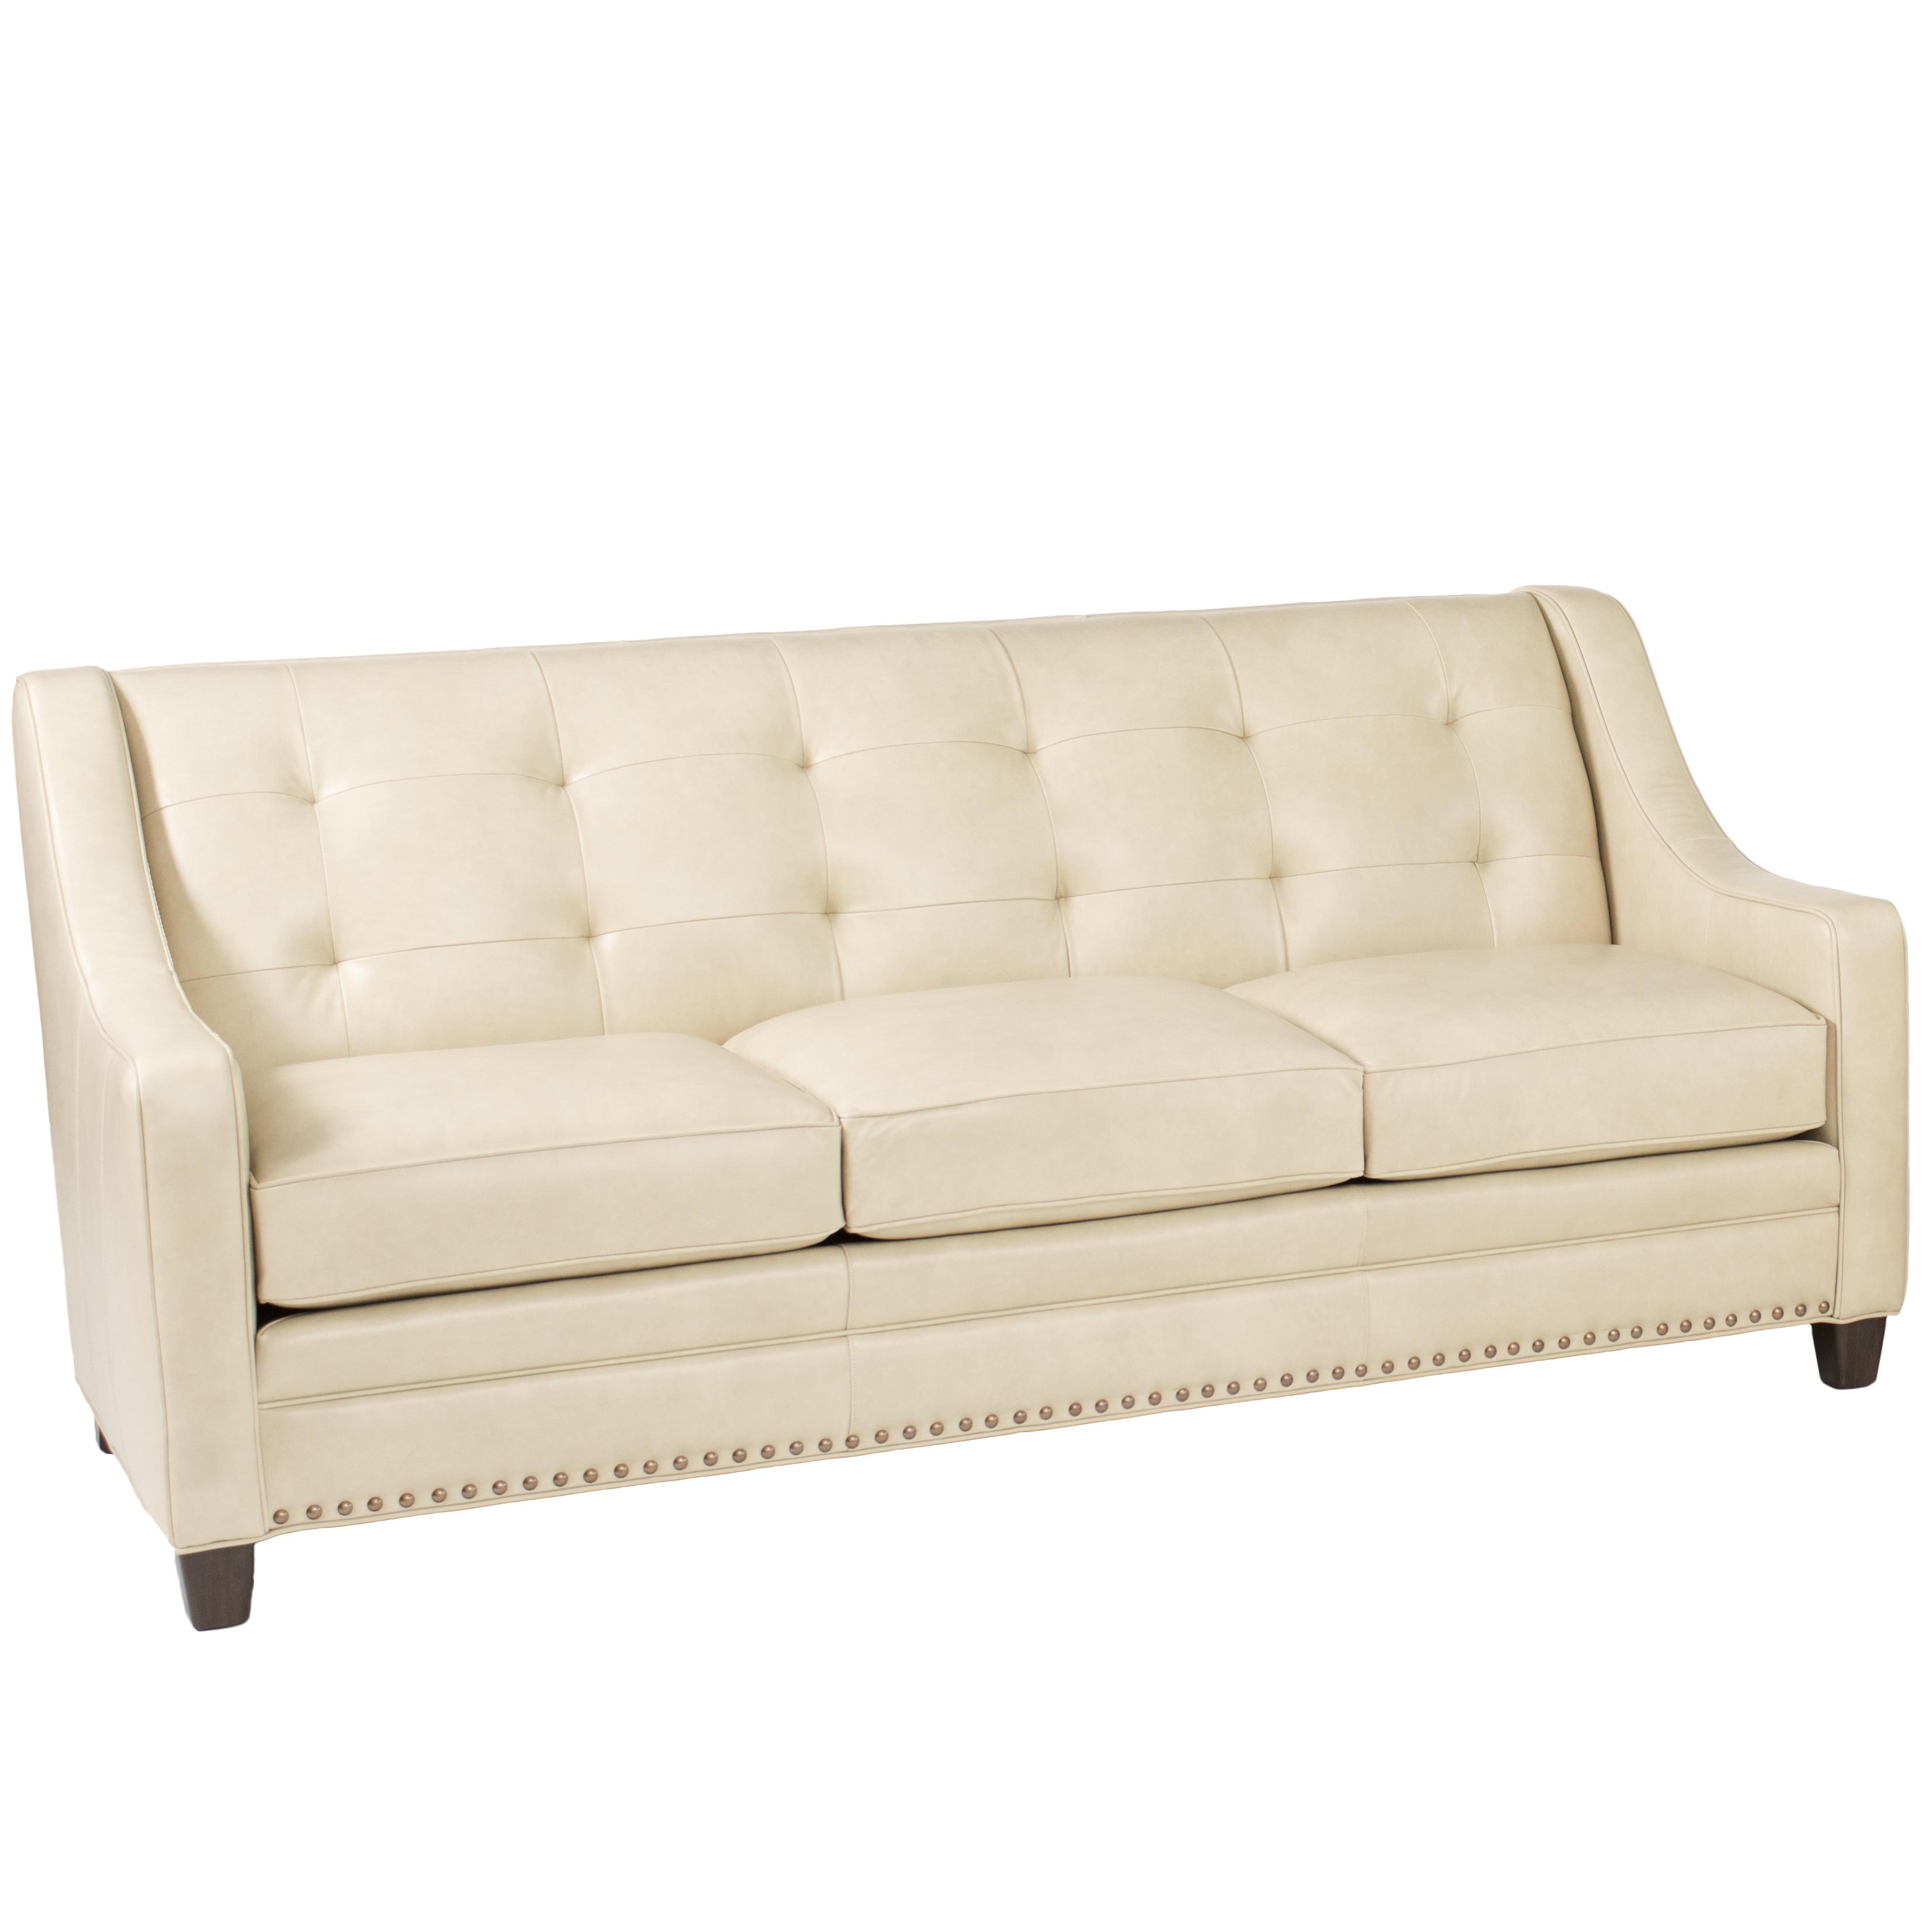 Paris Transitional Tufted White Leather Sectional Sofa: Transitional Sofa With Tufting By Smith Brothers